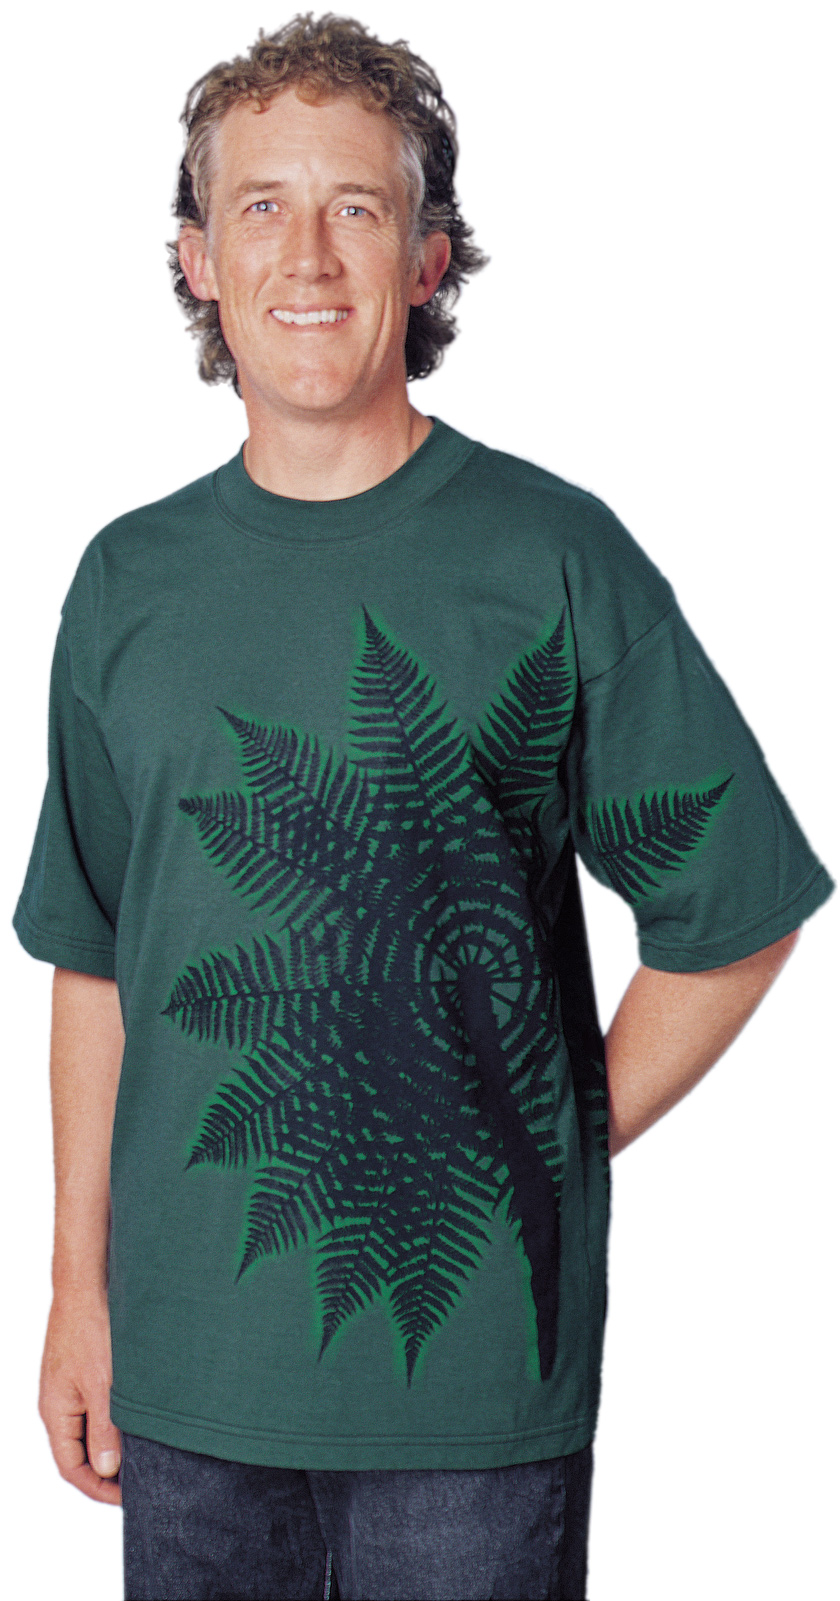 'Treefern New Zealand' T-shirt, two colour print on dark green fabric.